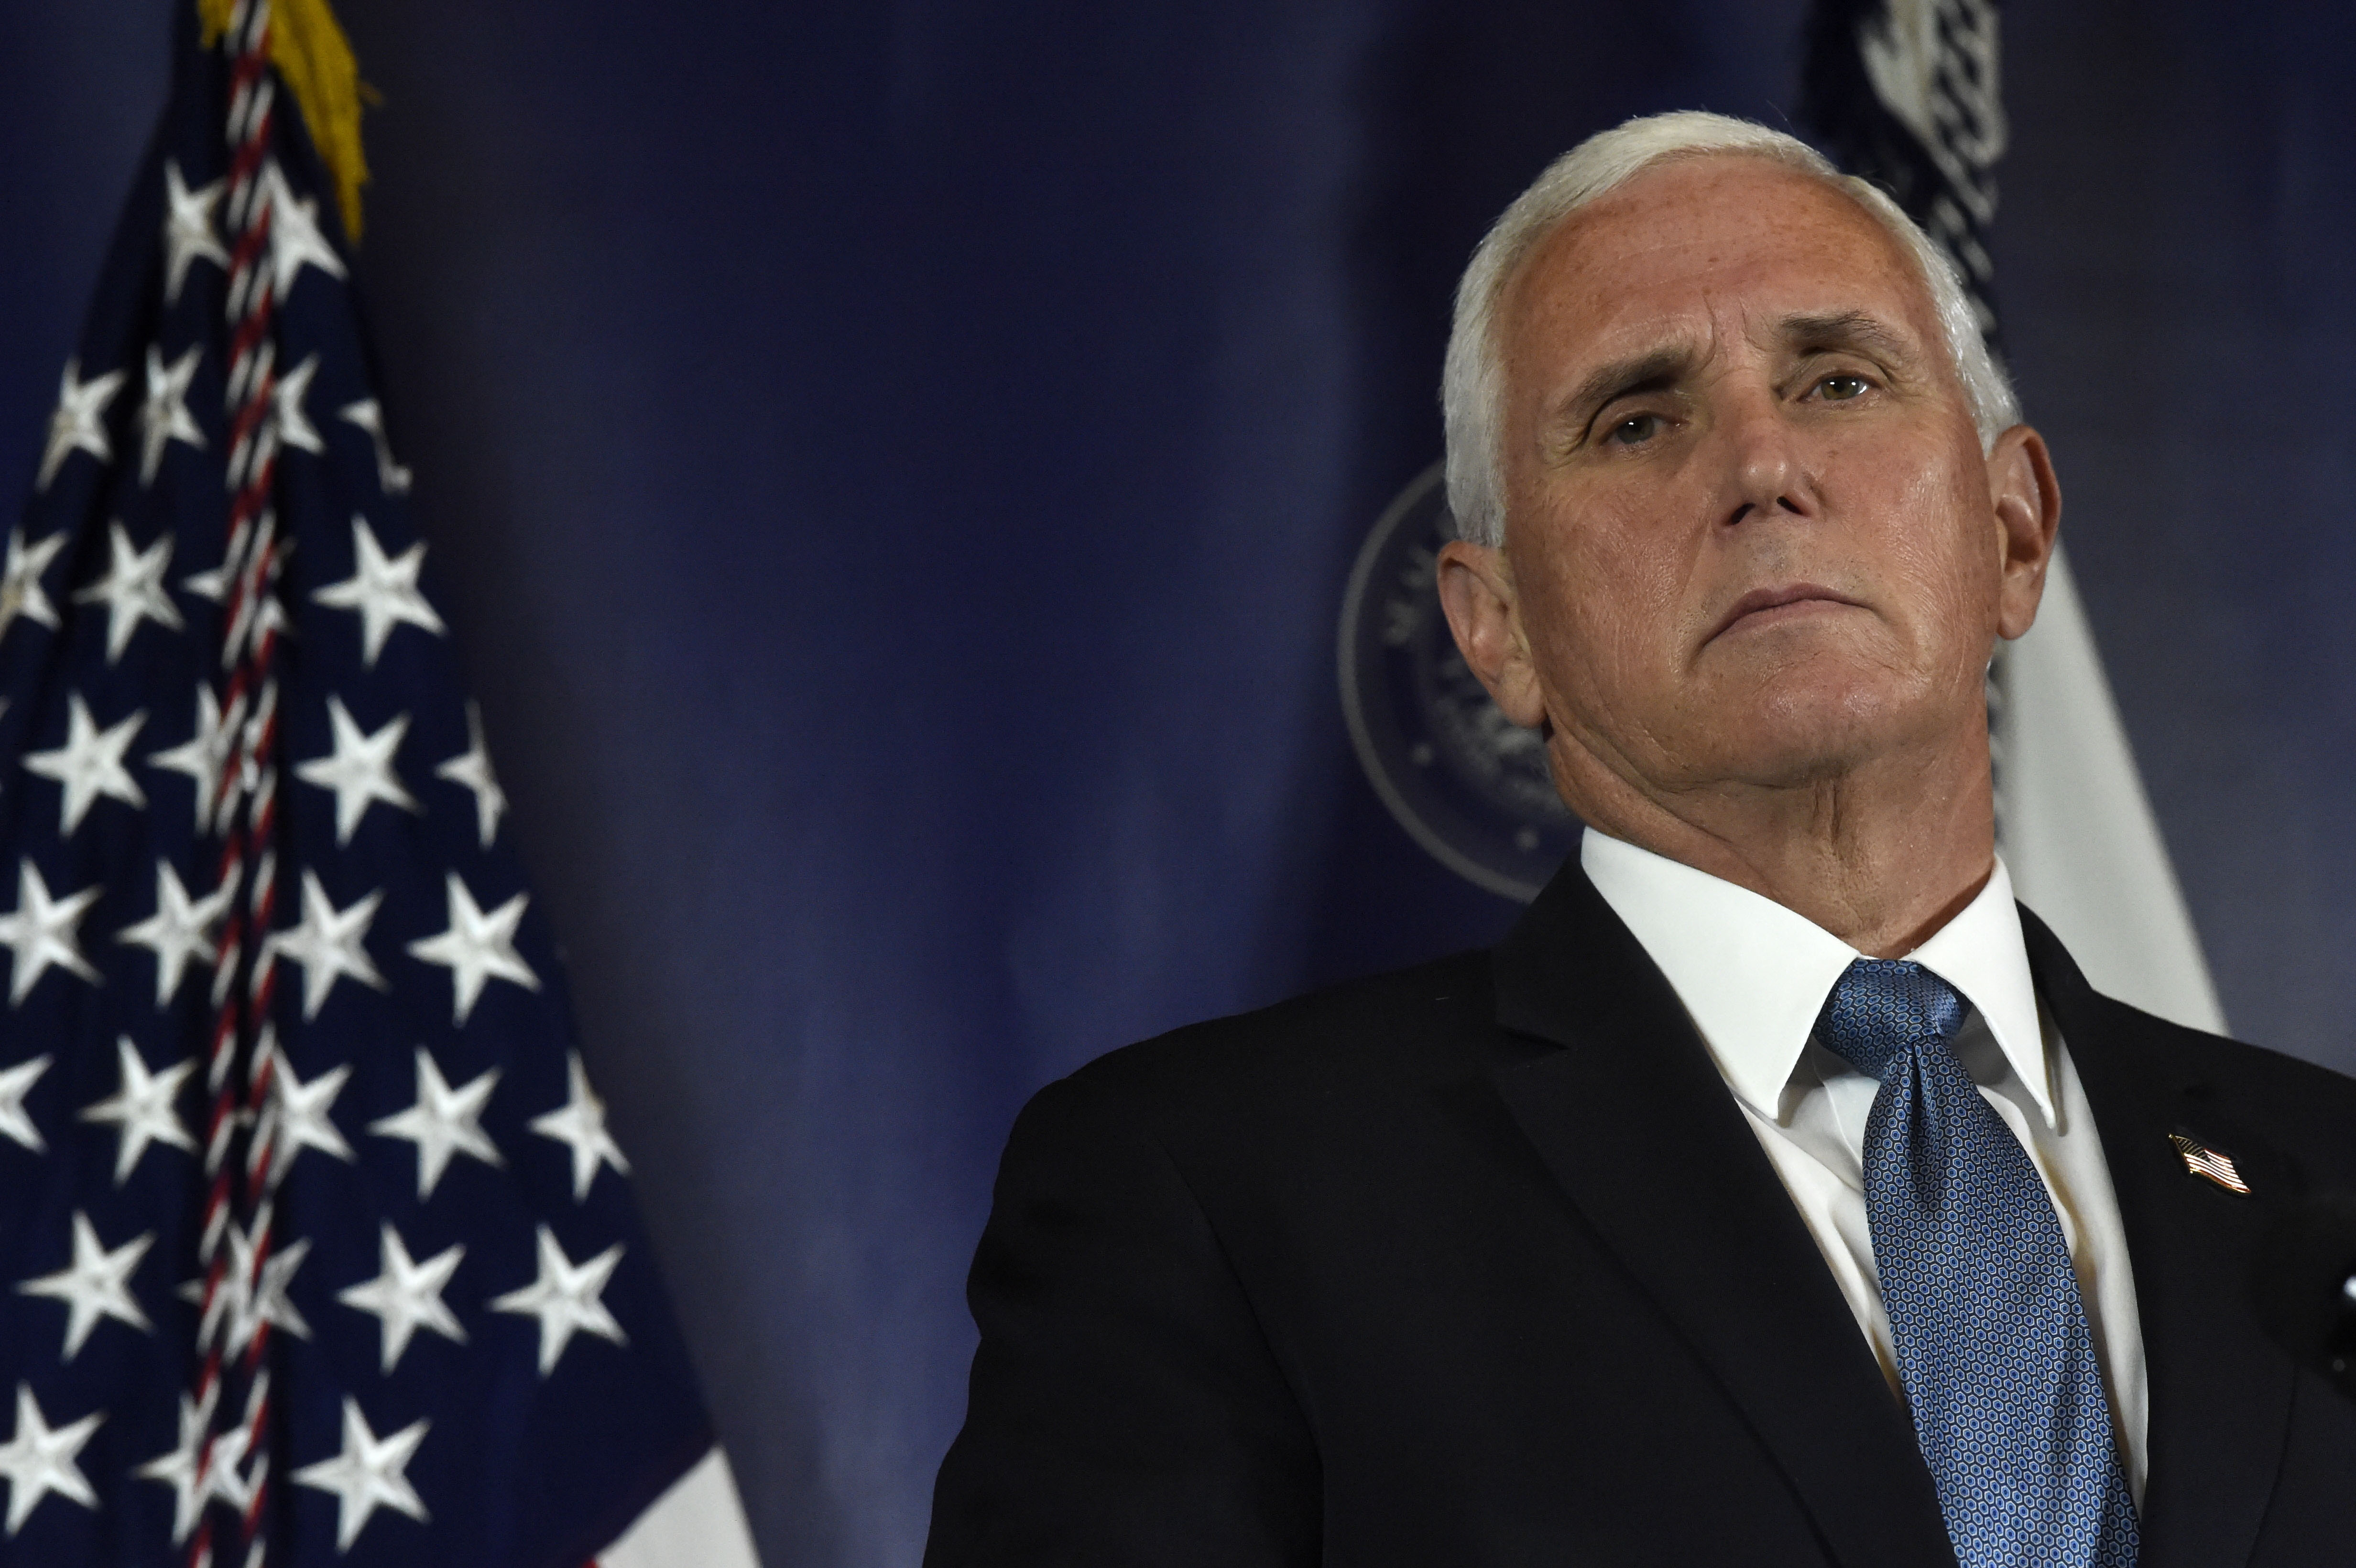 Vice President Mike Pence attends a briefing on July 21 in Columbia, South Carolina.